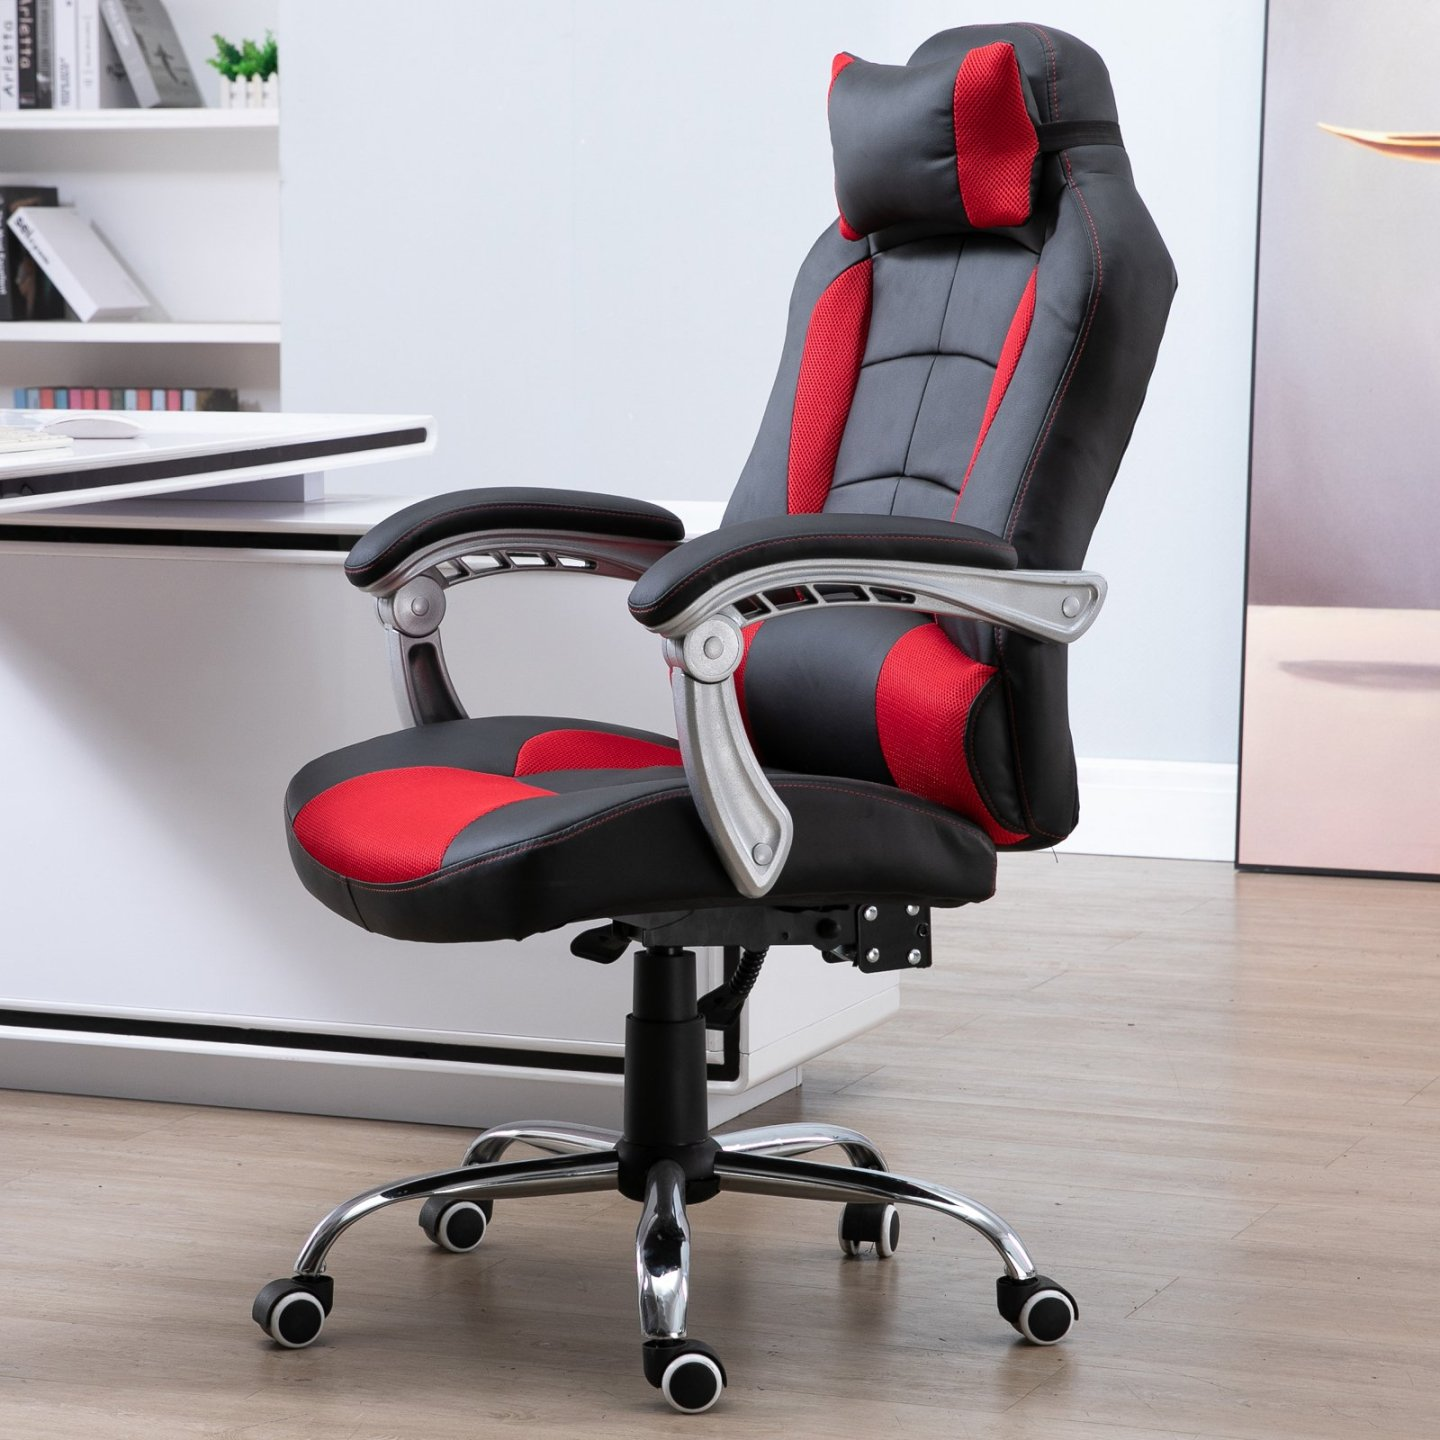 HOMCOM High Back Executive Office Chair Racing Executive Gaming Chair Adjustable Recliner with Removable Headrest Pillow Home Office Black / Red